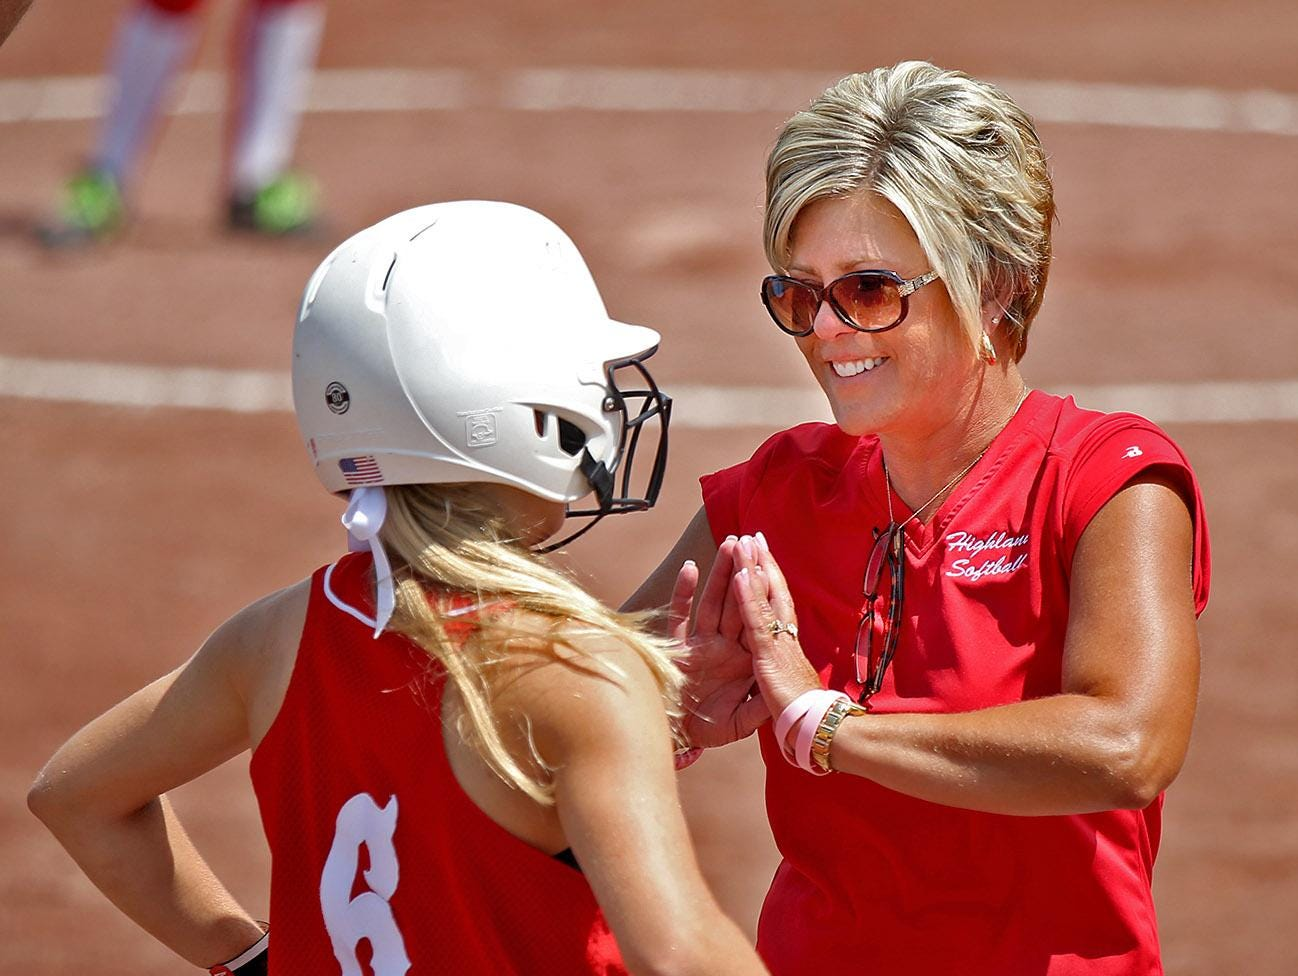 Highland ( Riverside ) head coach Carrie Wieland talked with Kelsey Hora after Hora was safe in a rundown between third and home against St. Ansgar in Class 2-A quarterfinal game at the 2014 Girls State Softball Tournament in Ft. Dodge on Tuesday July 22, 2014